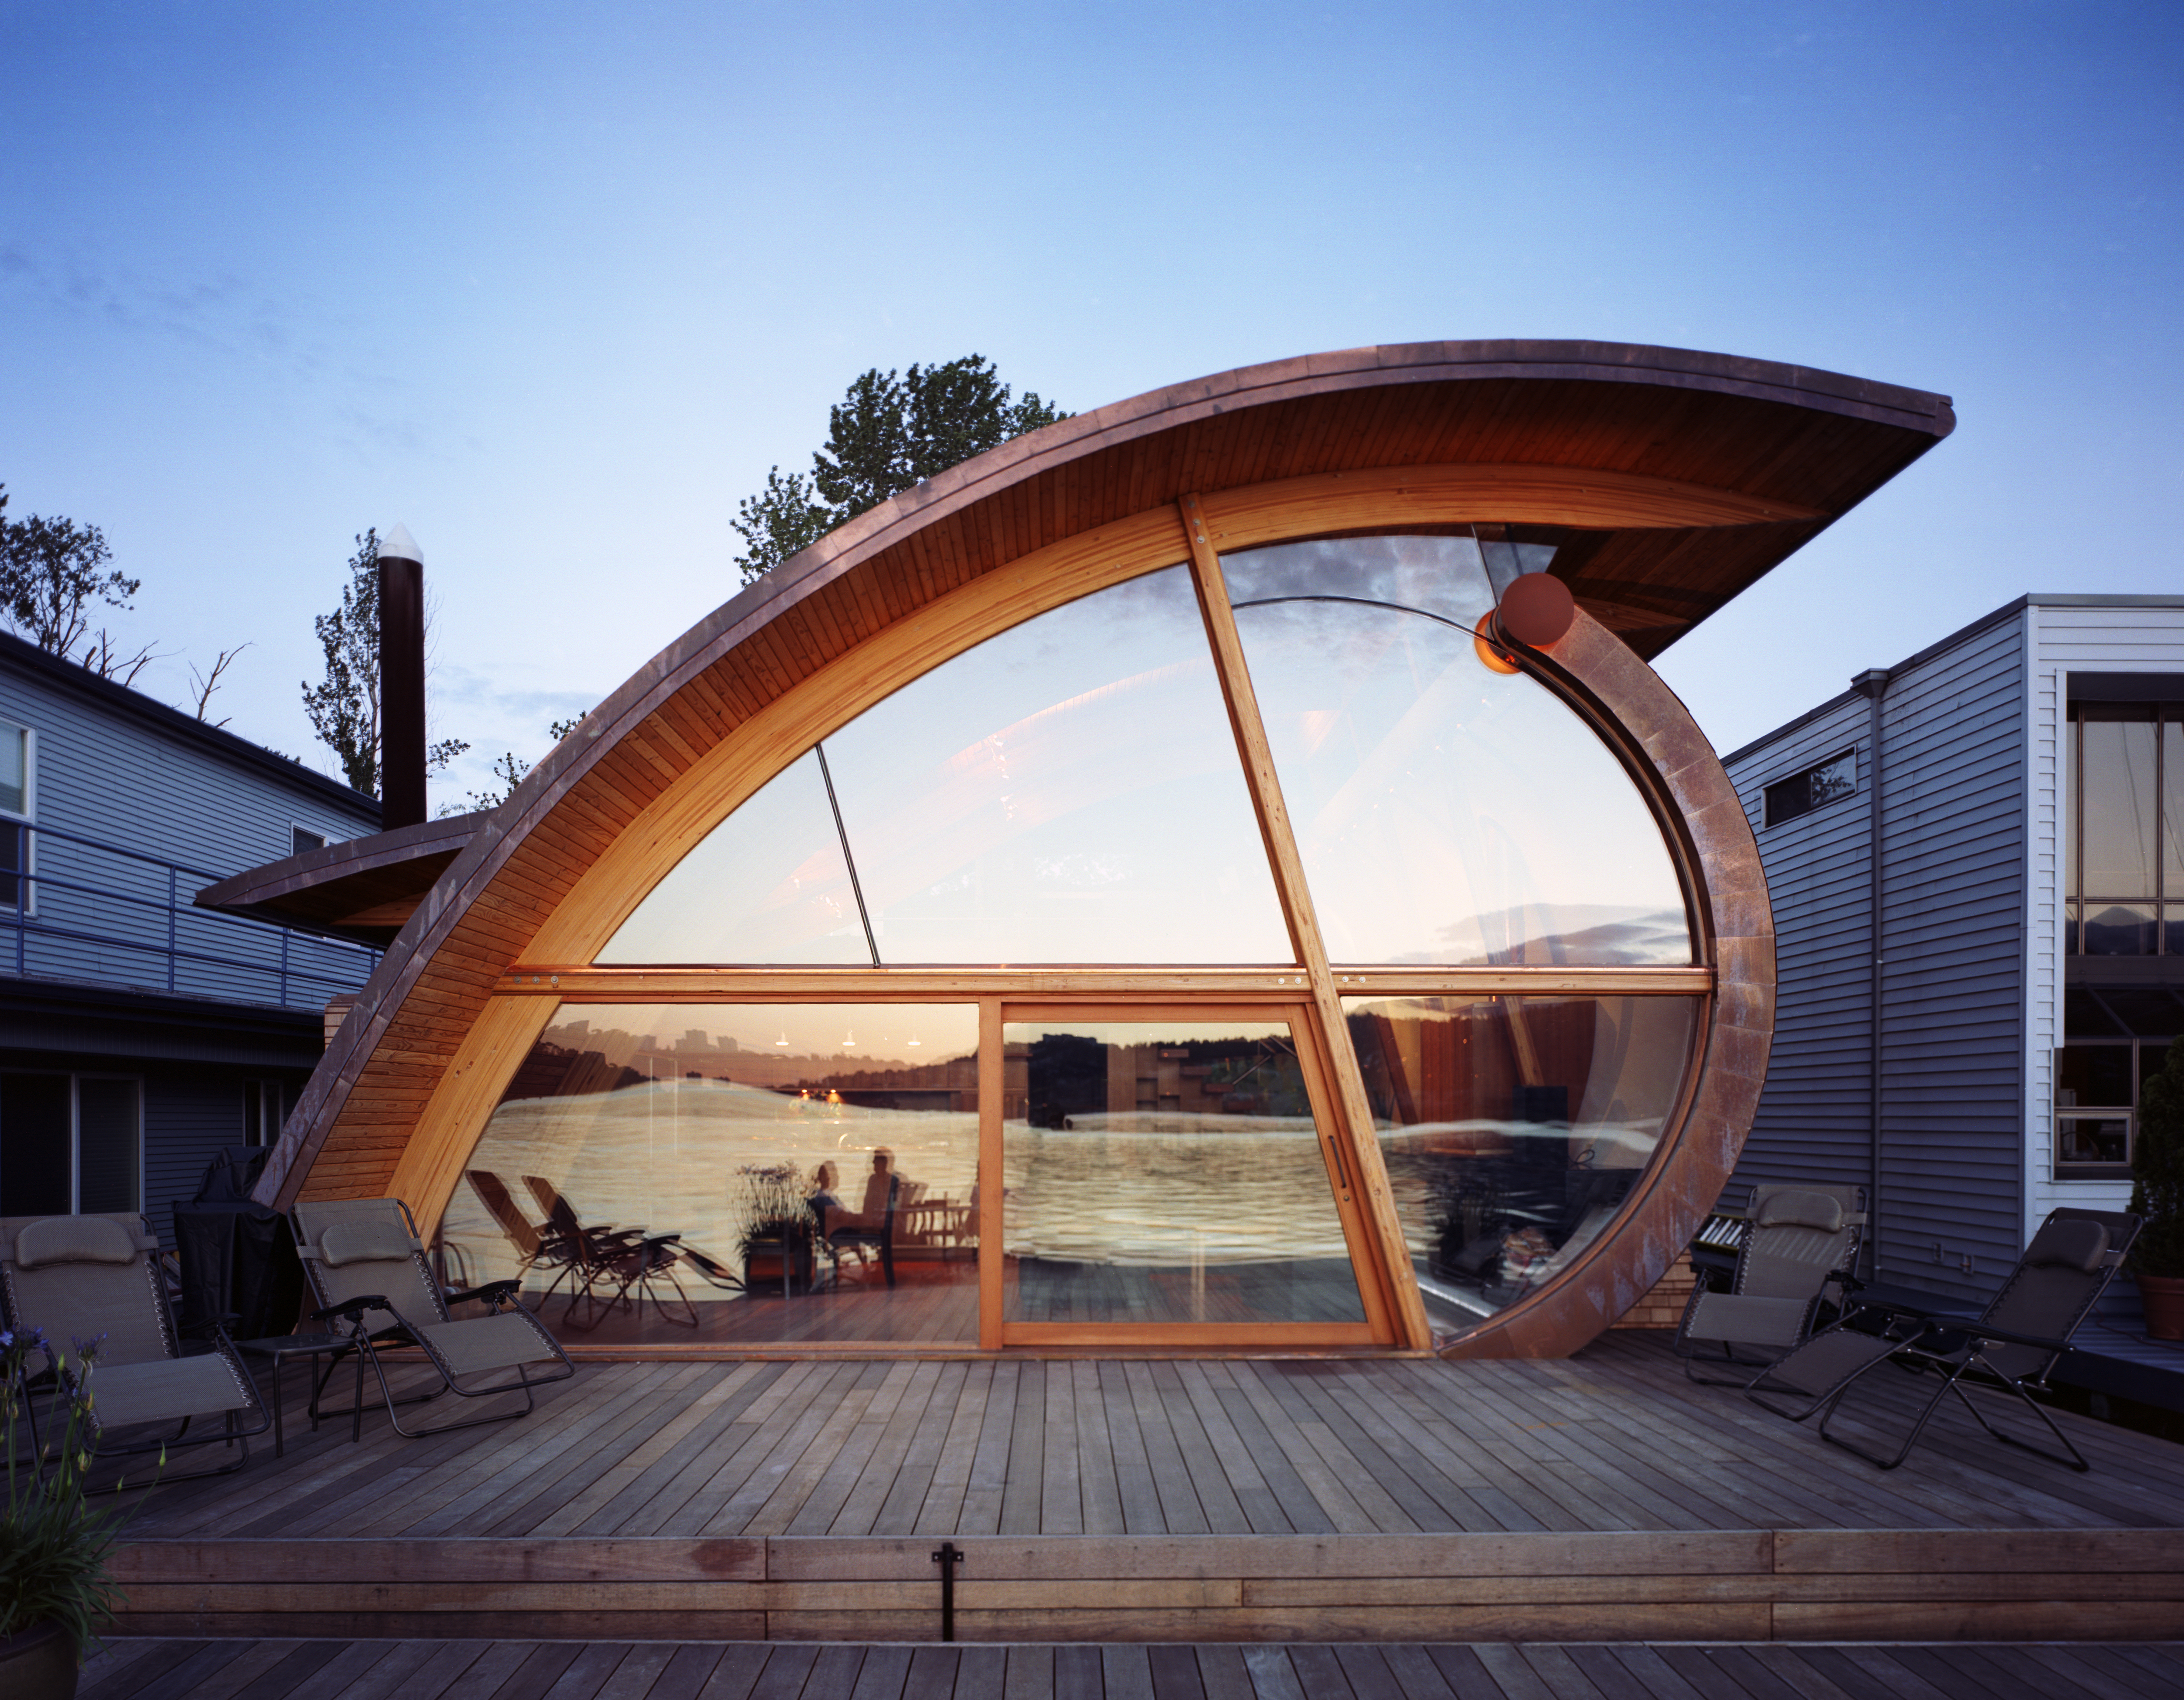 The Fennel House, designed by Robert Harvey Oshatz, floats on Portland's Willamette River. Its curved form, reflecting the ripples of the water, is made with Glulam wood beams and sits on a floating platform.